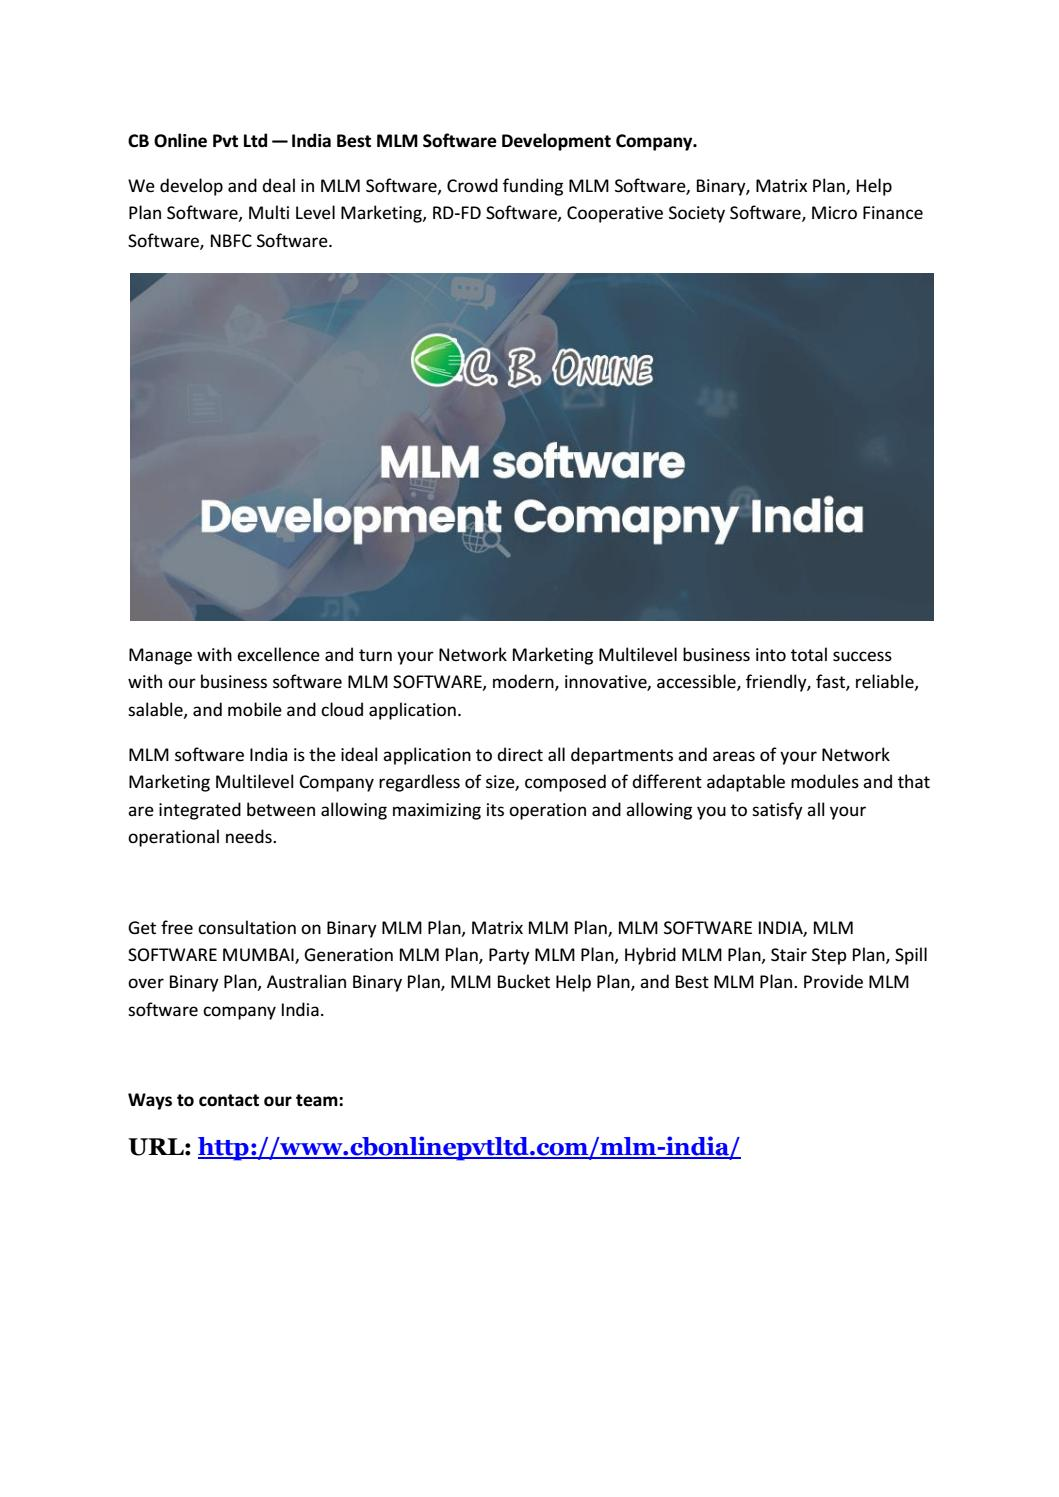 CB Online Pvt Ltd — India Best MLM Software Development